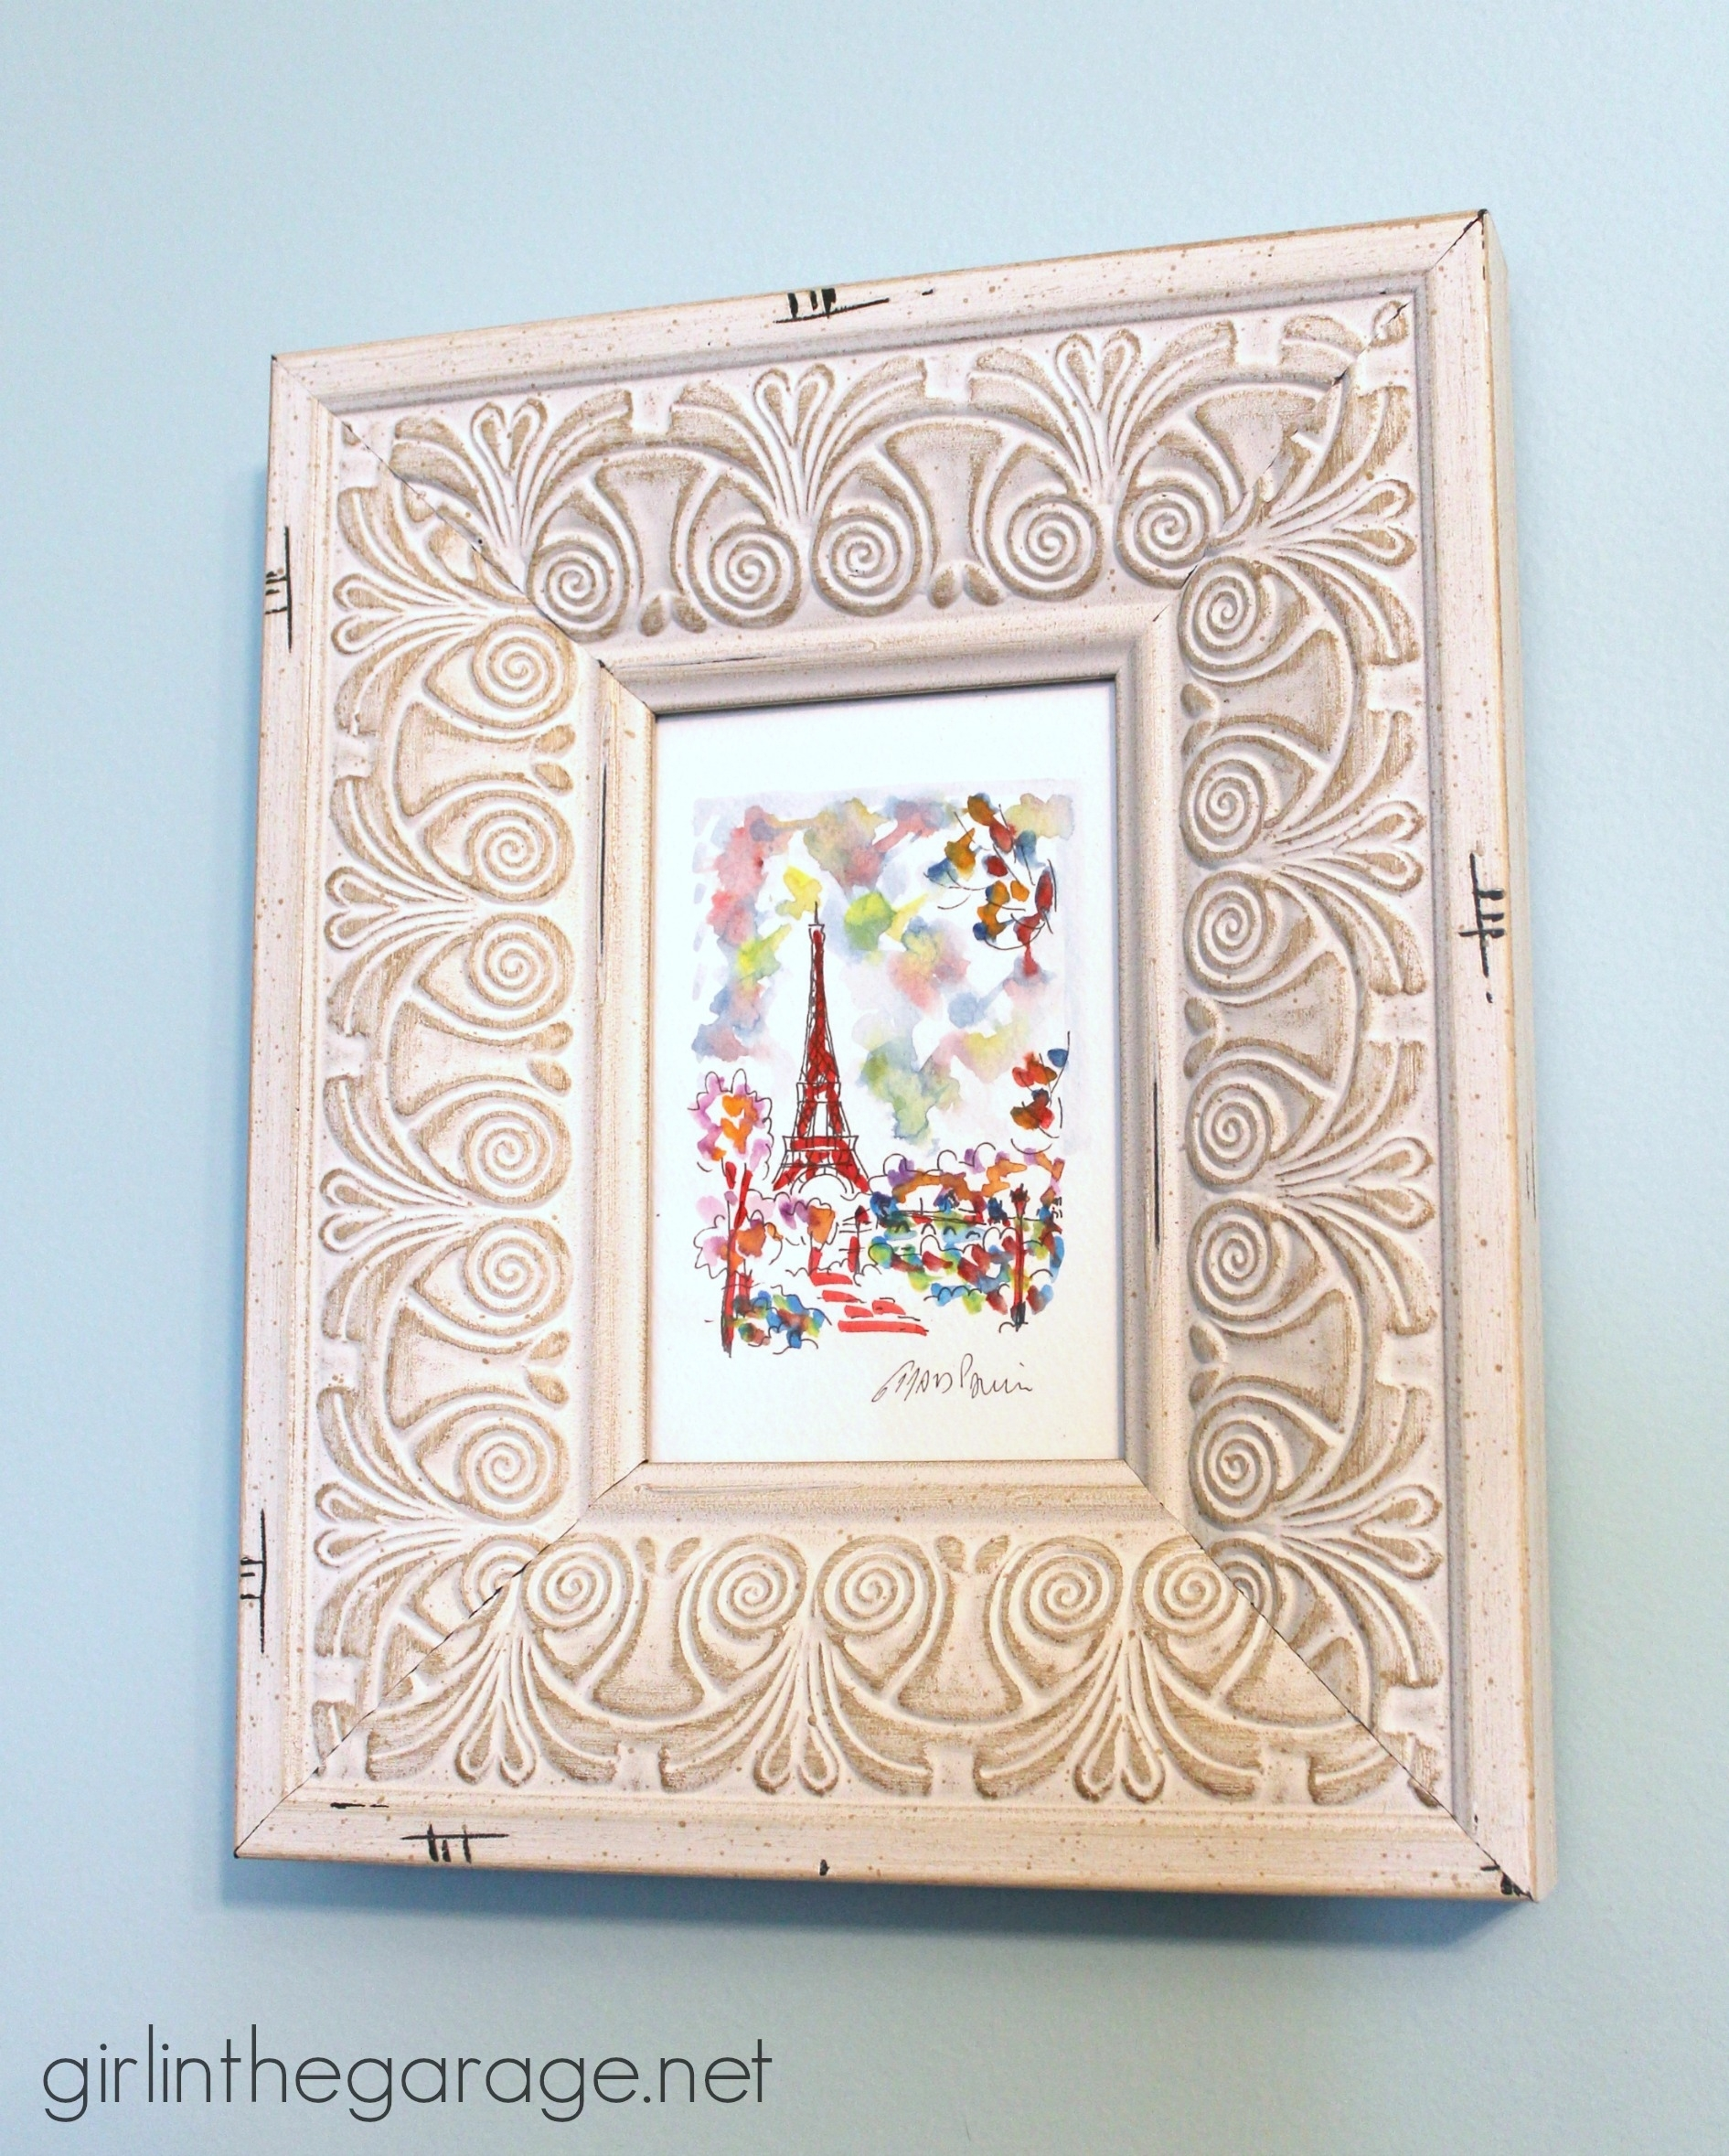 Diy Wall Art: Framed Paris Prints And Anthropologie Inspired Bonjour For 2018 Anthropologie Wall Art (View 6 of 20)